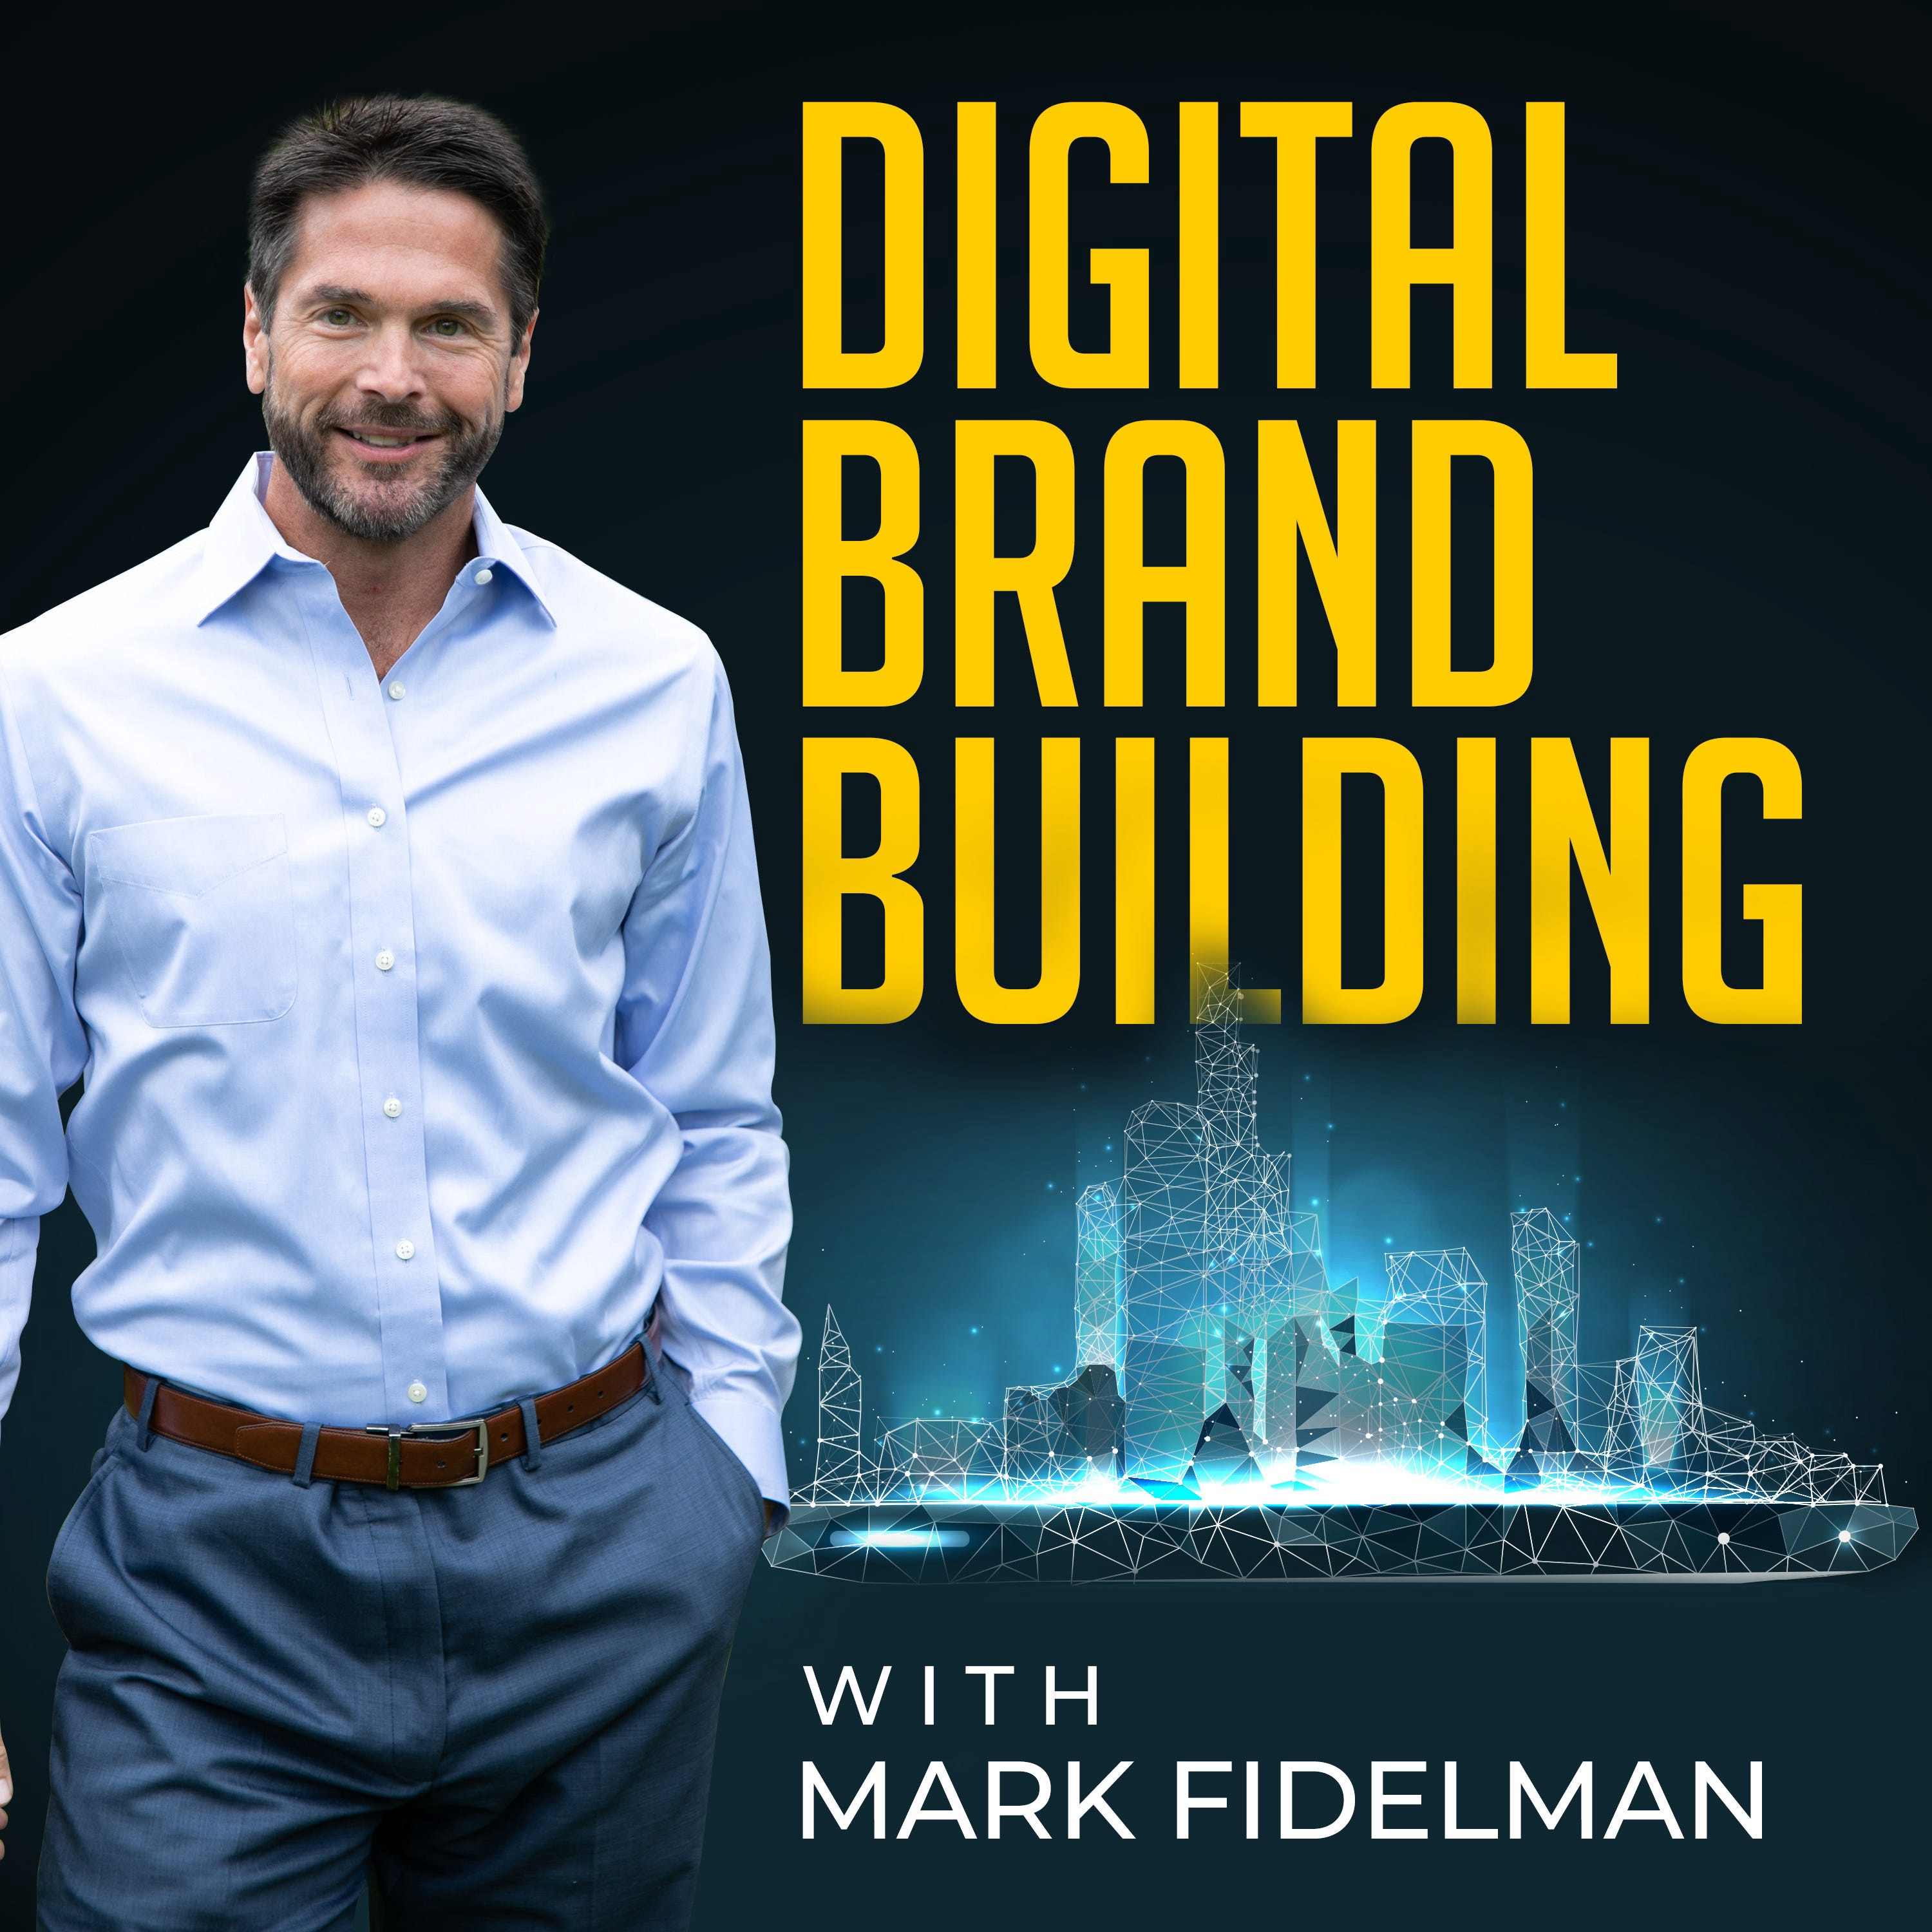 Digital Brand Building with Mark Fidelman podcast featuring Tuck Ross talking about how marketers can use TikTok for brands.